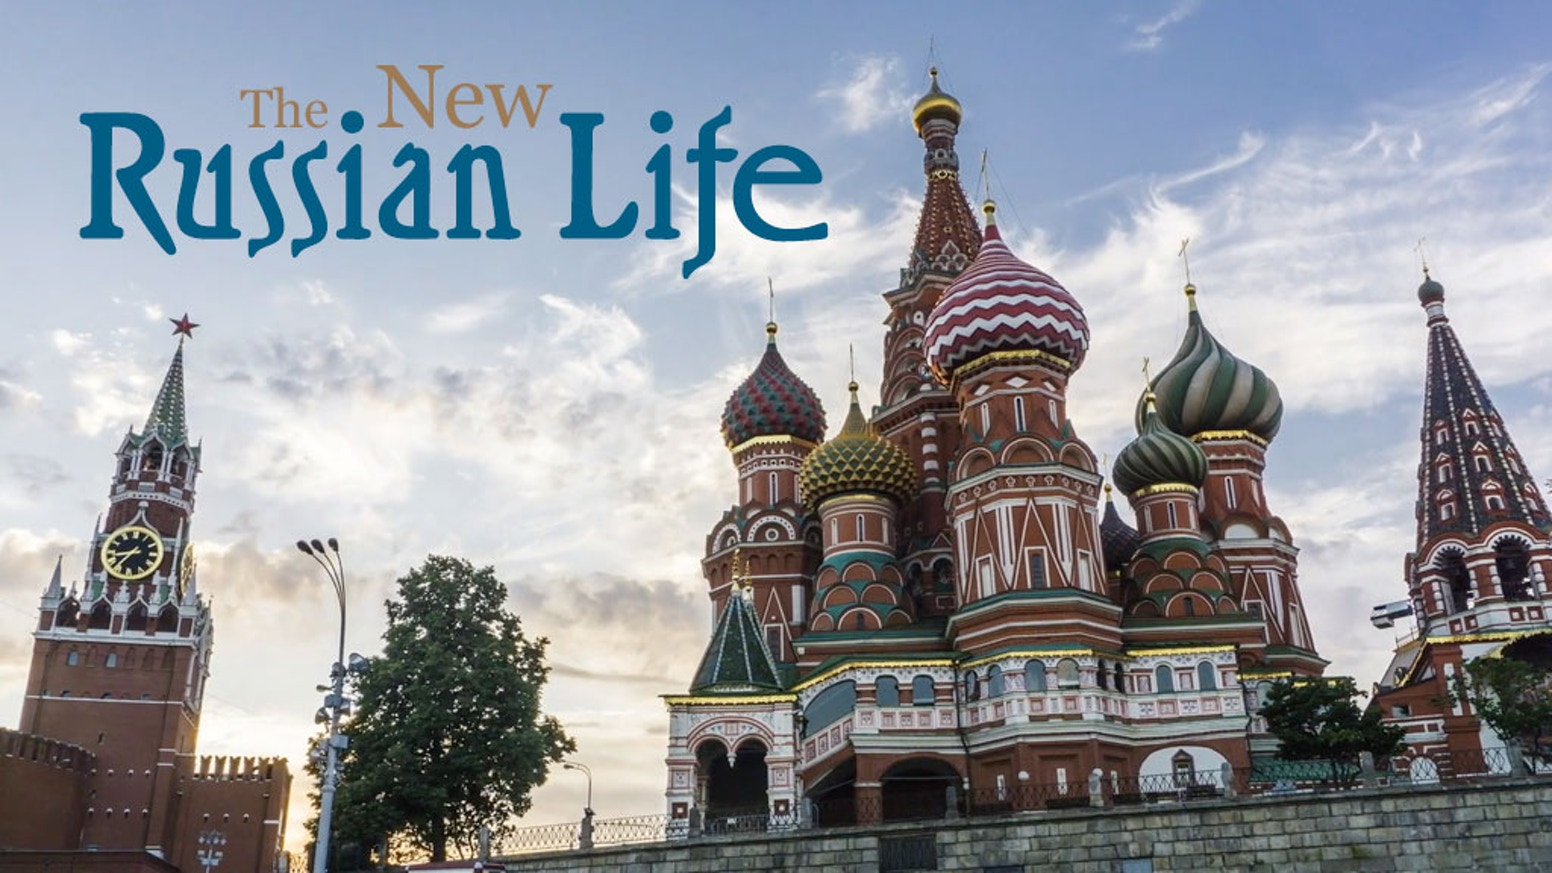 The most interesting, authoritative online outlet on all things Russian.